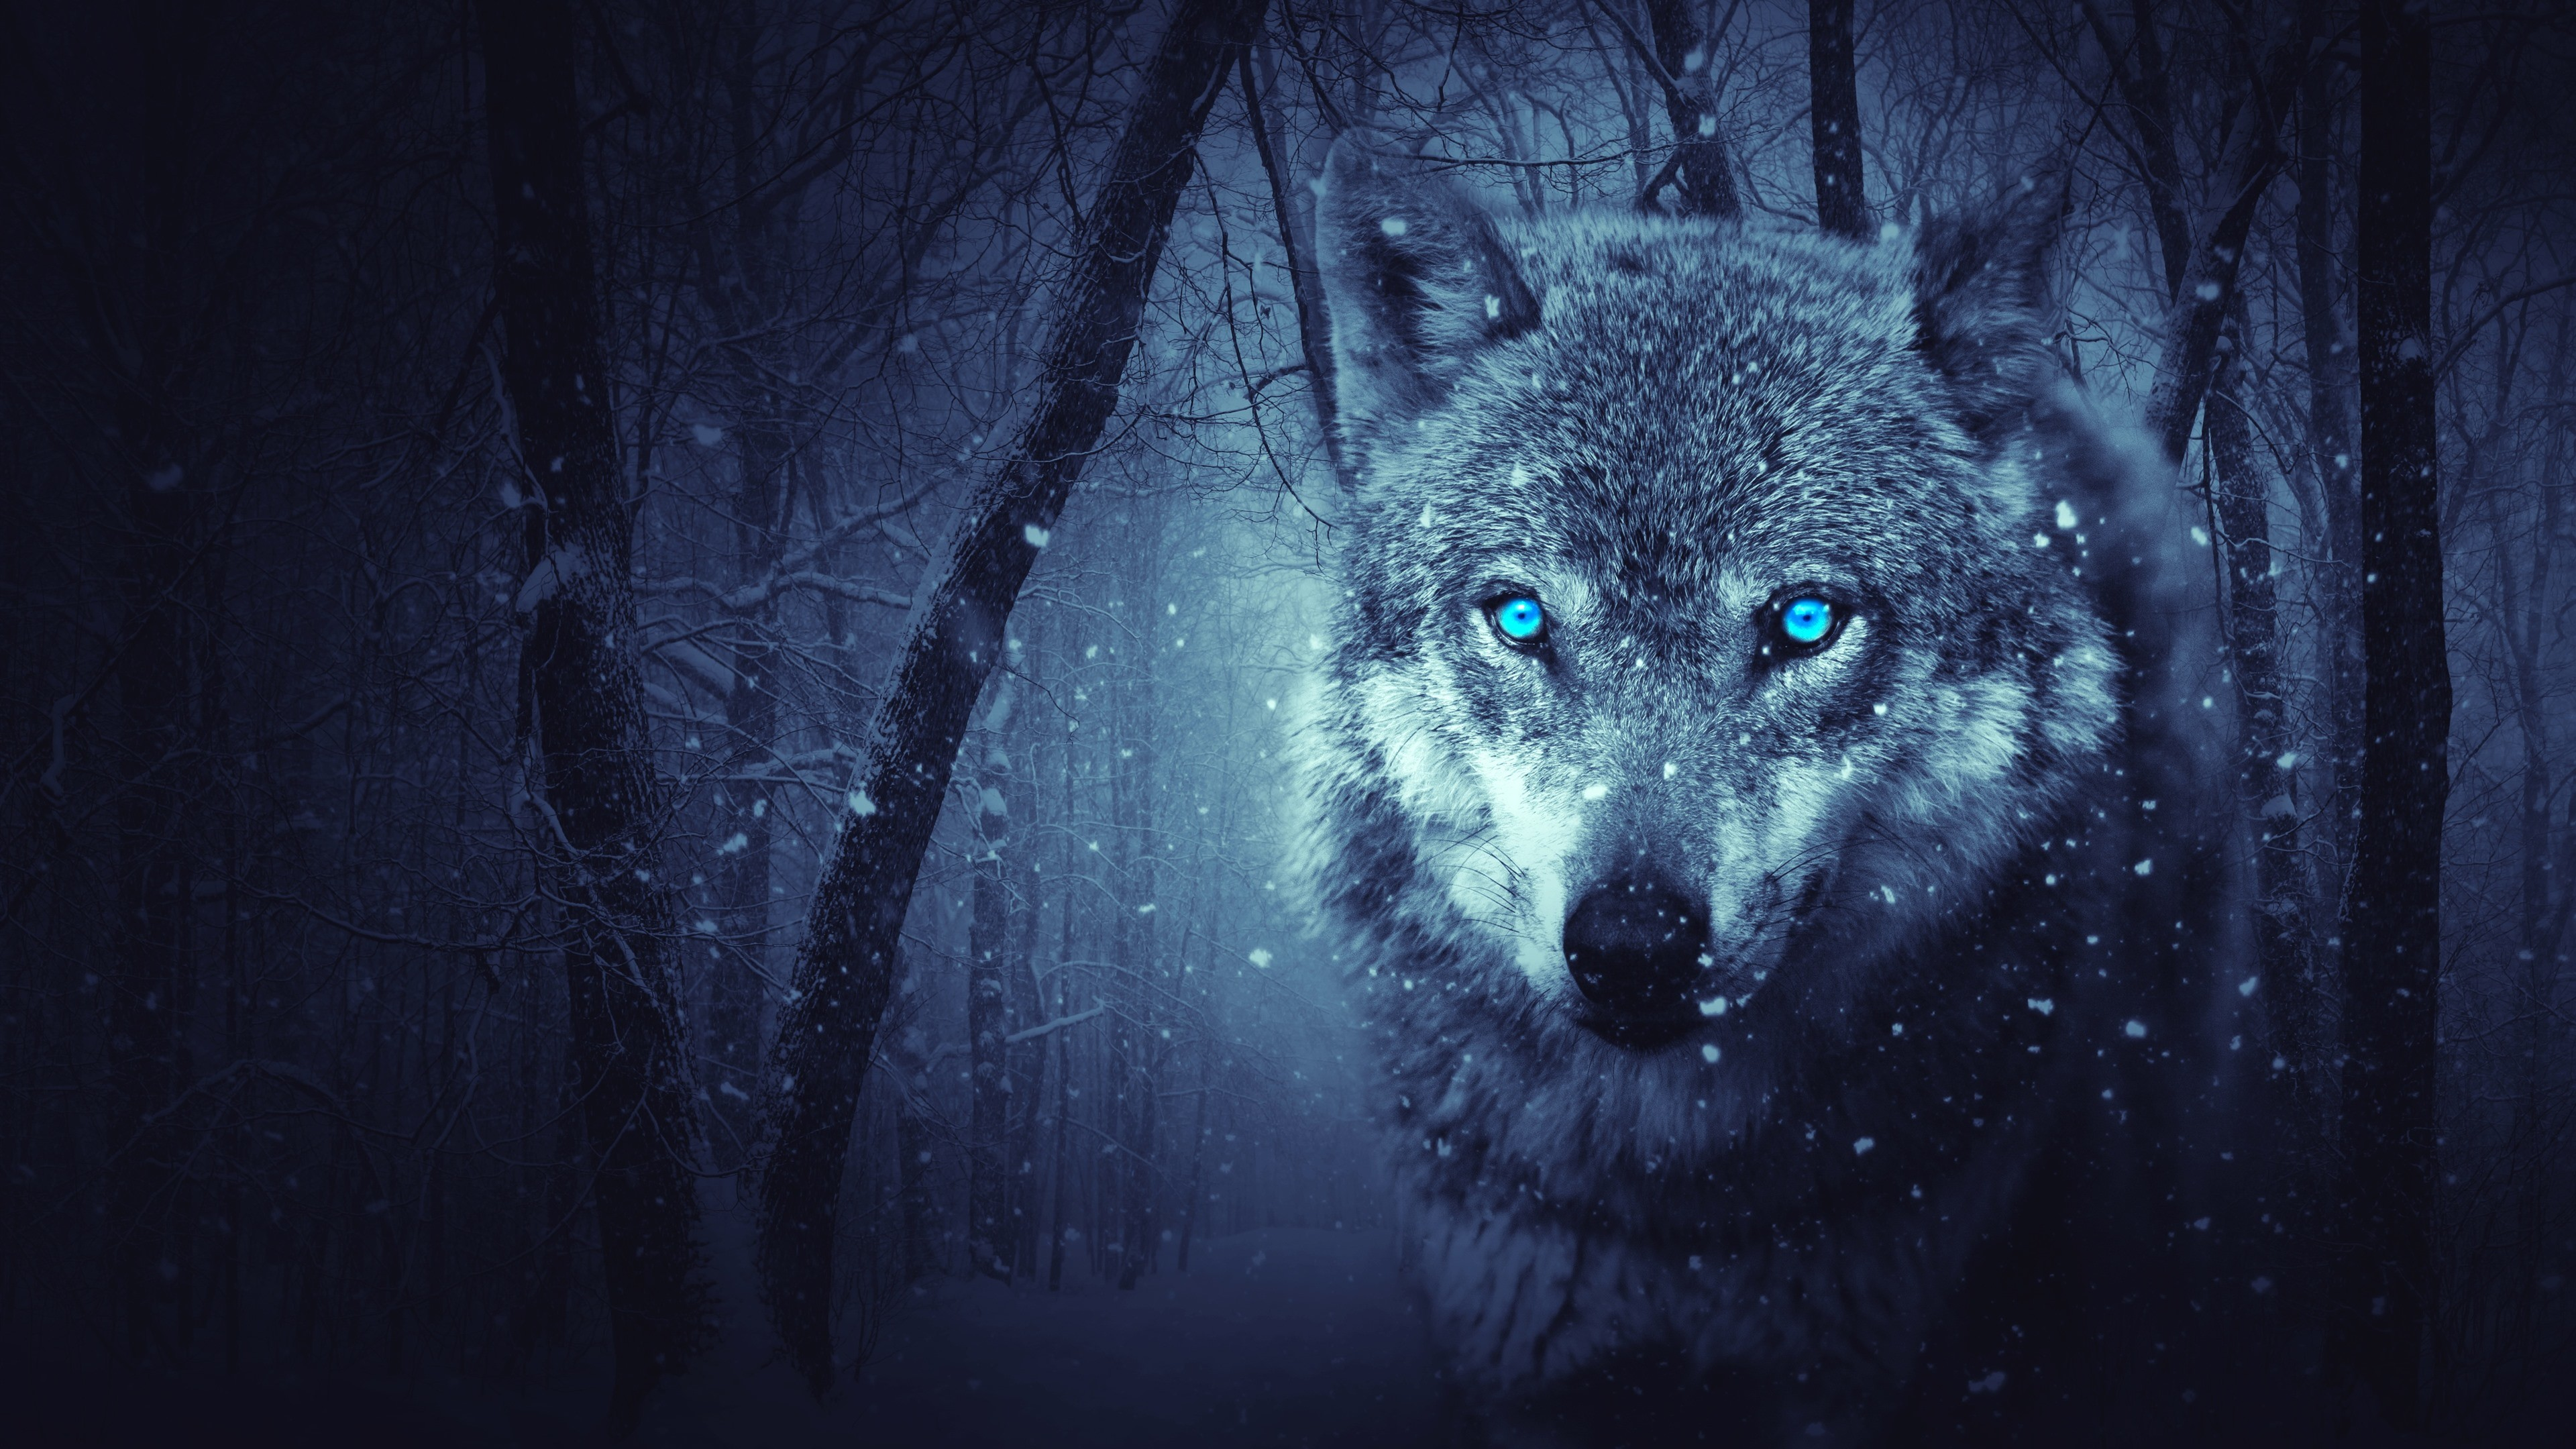 3840x2160 Wallpaper Wolf, blue eyes, snowy, winter, forest 5120x2880 UHD 5K Picture,  Image